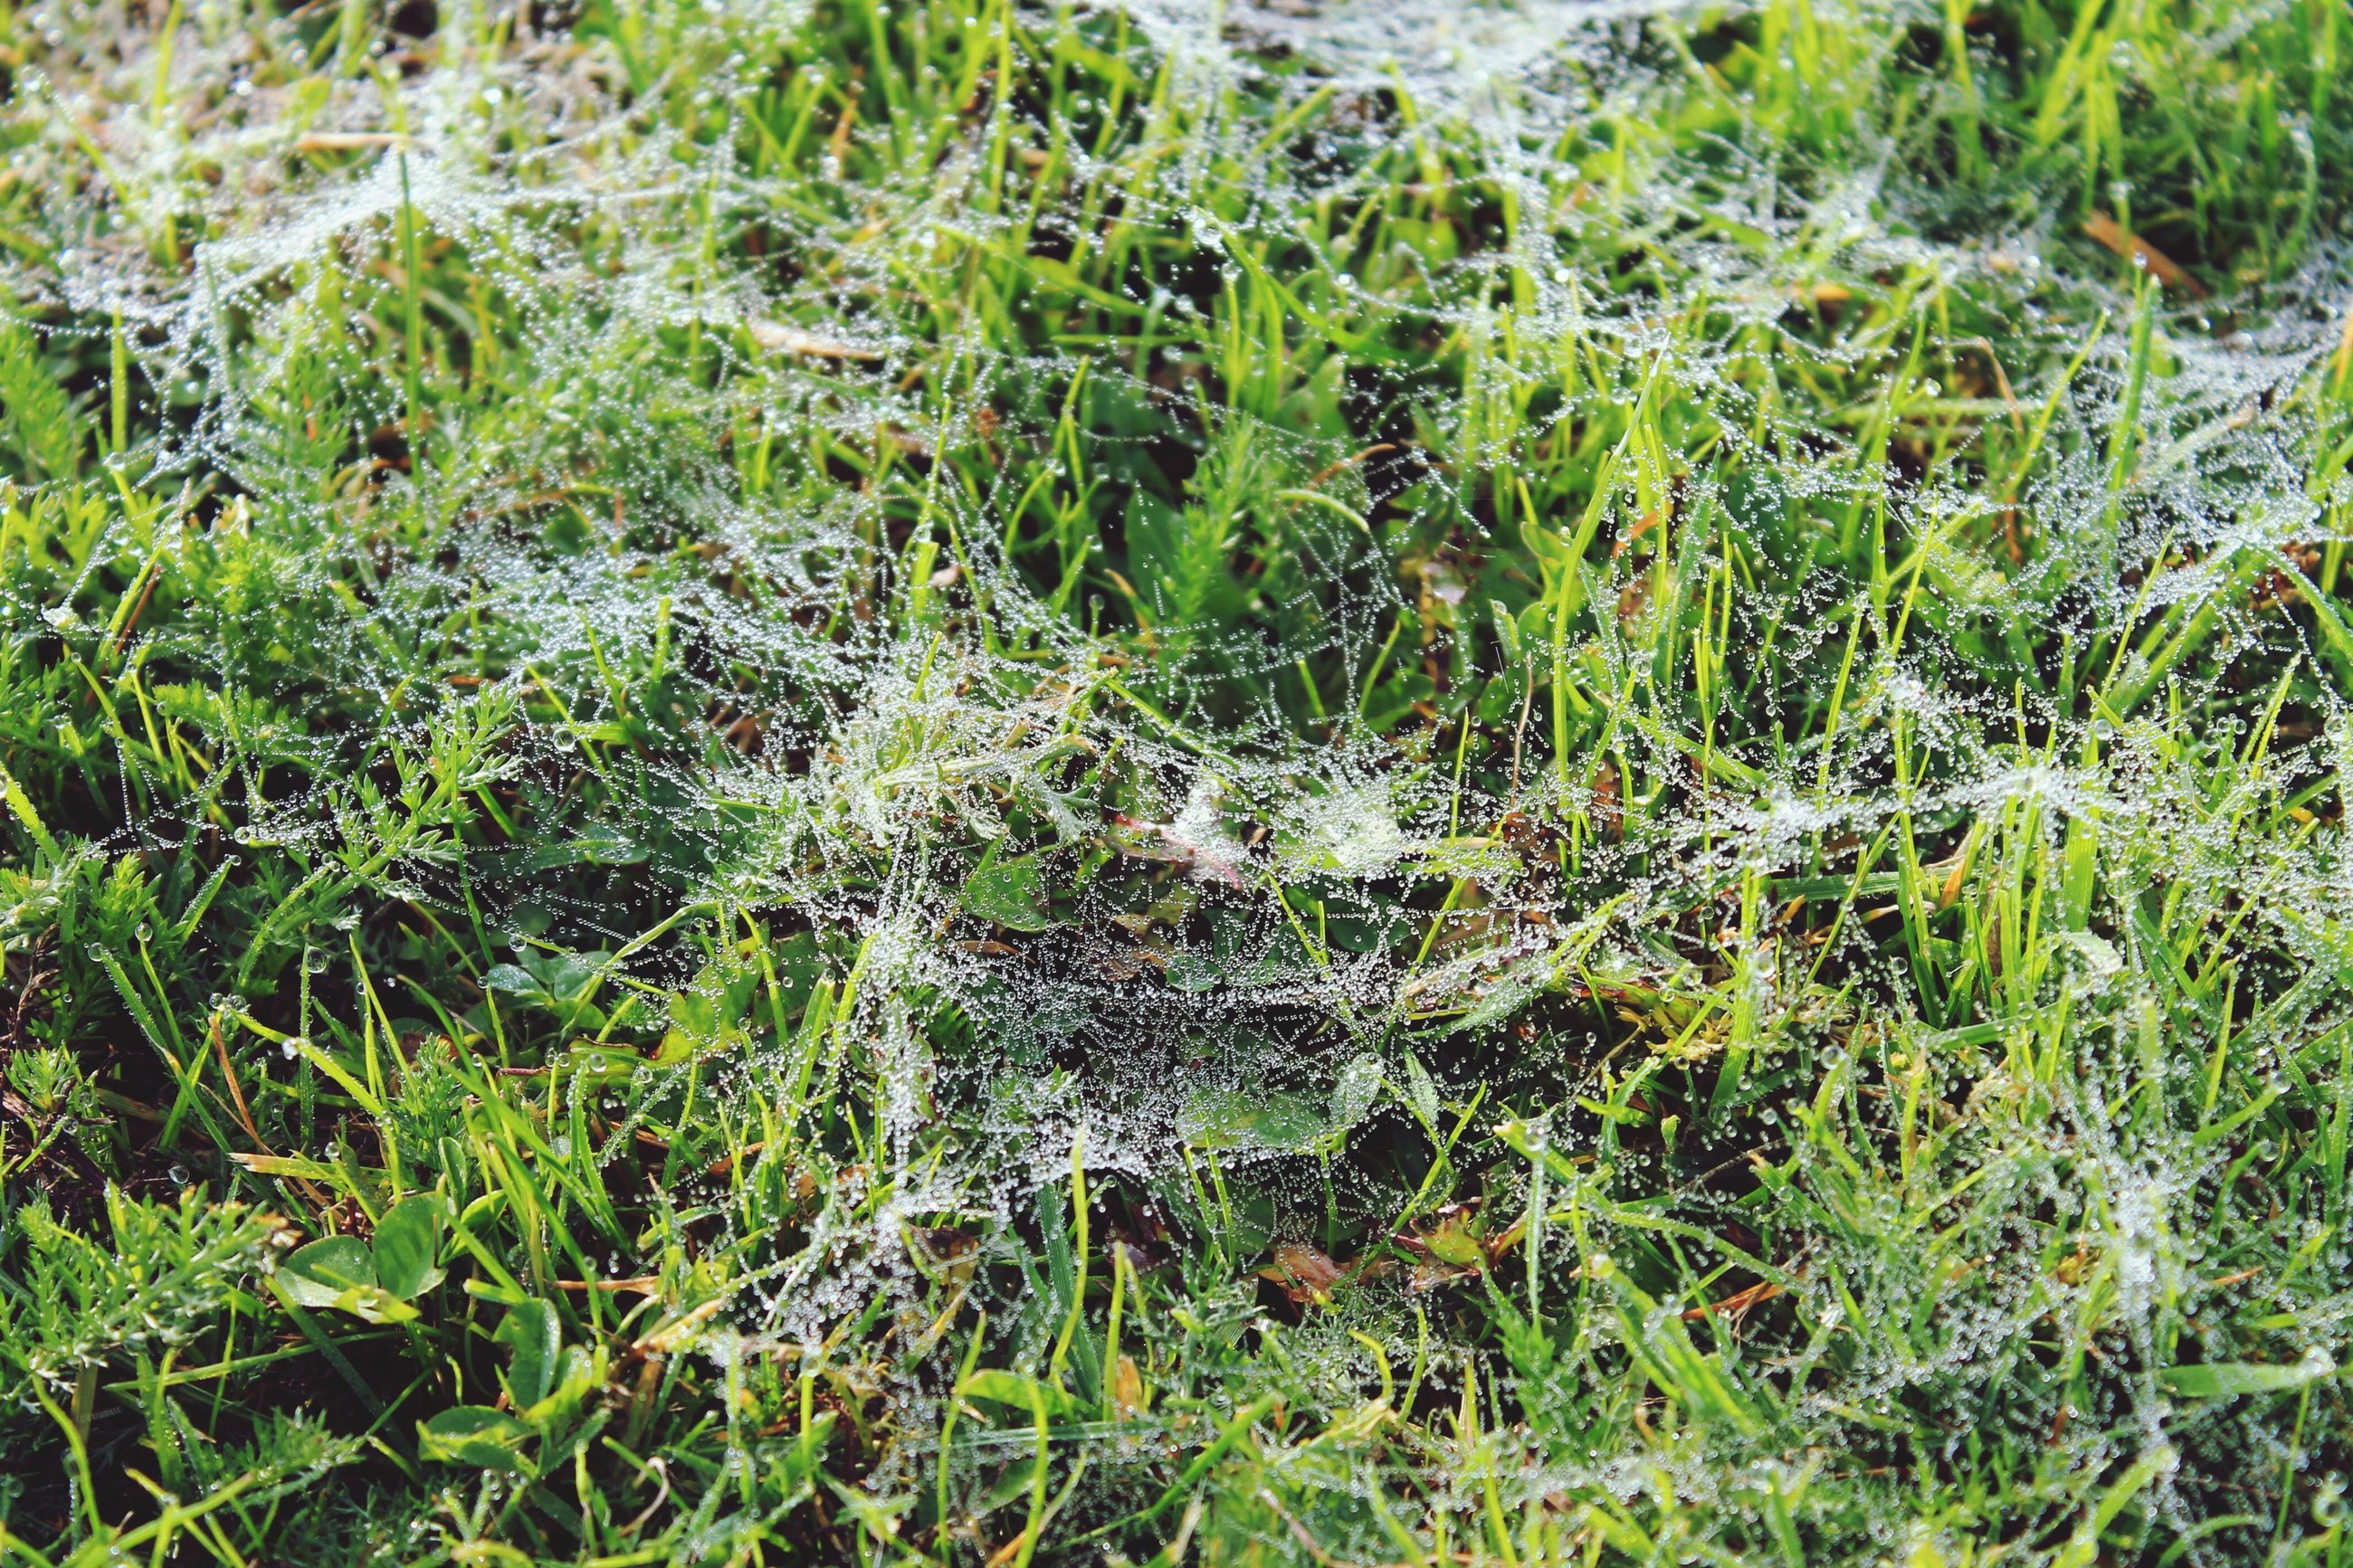 nature, growth, green color, grass, no people, beauty in nature, outdoors, day, field, close-up, full frame, backgrounds, spider web